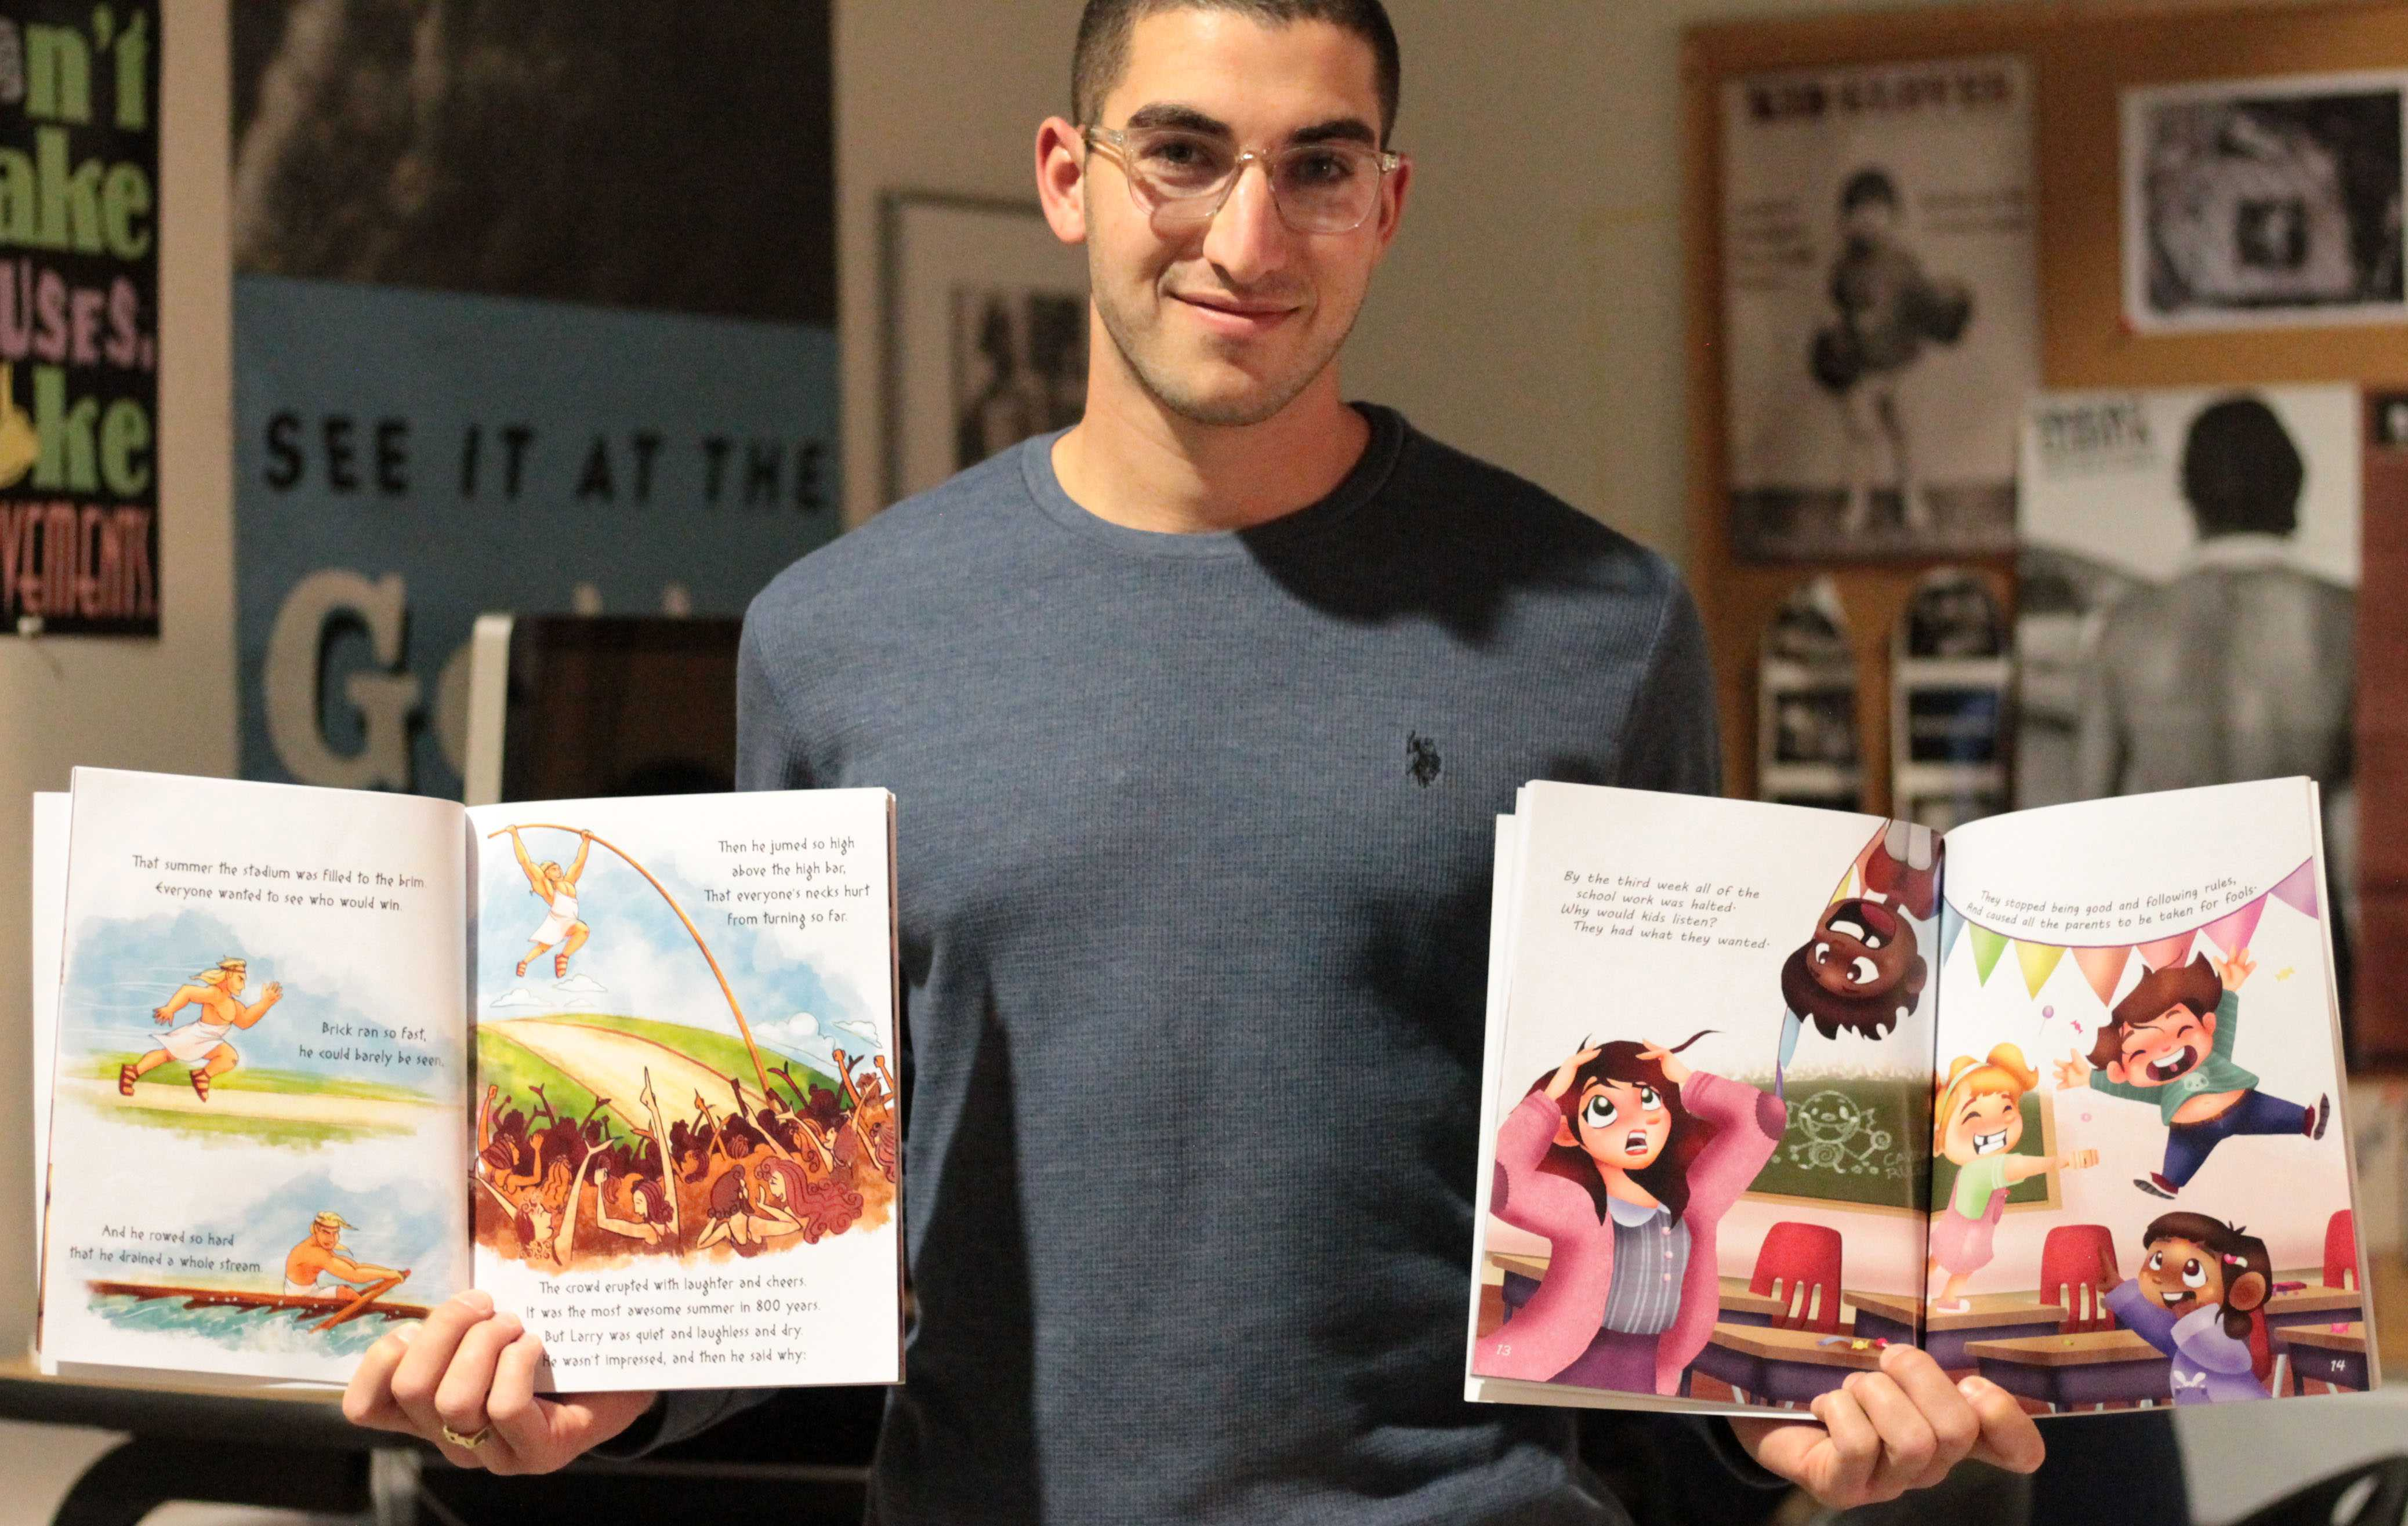 Jesse Orenshein, author and CSUN alumnus, showing his first two books